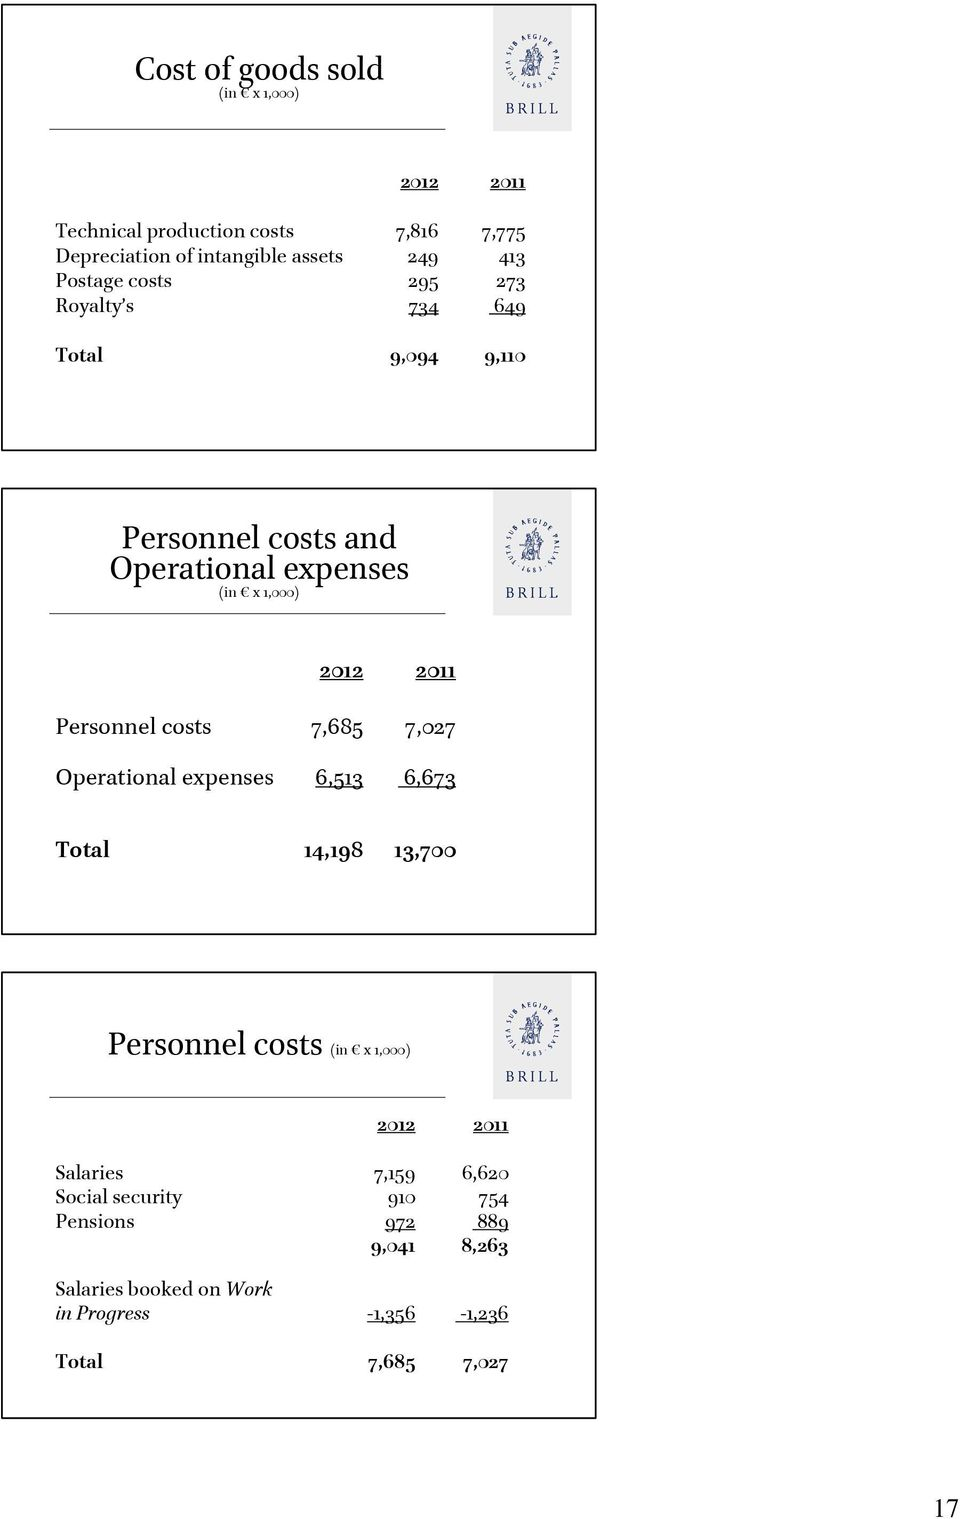 Personnel costs 7,685 7,027 Operational expenses 6,513 6,673 Total 14,198 13,700 Personnel costs (in x 1,000) 2012 2011